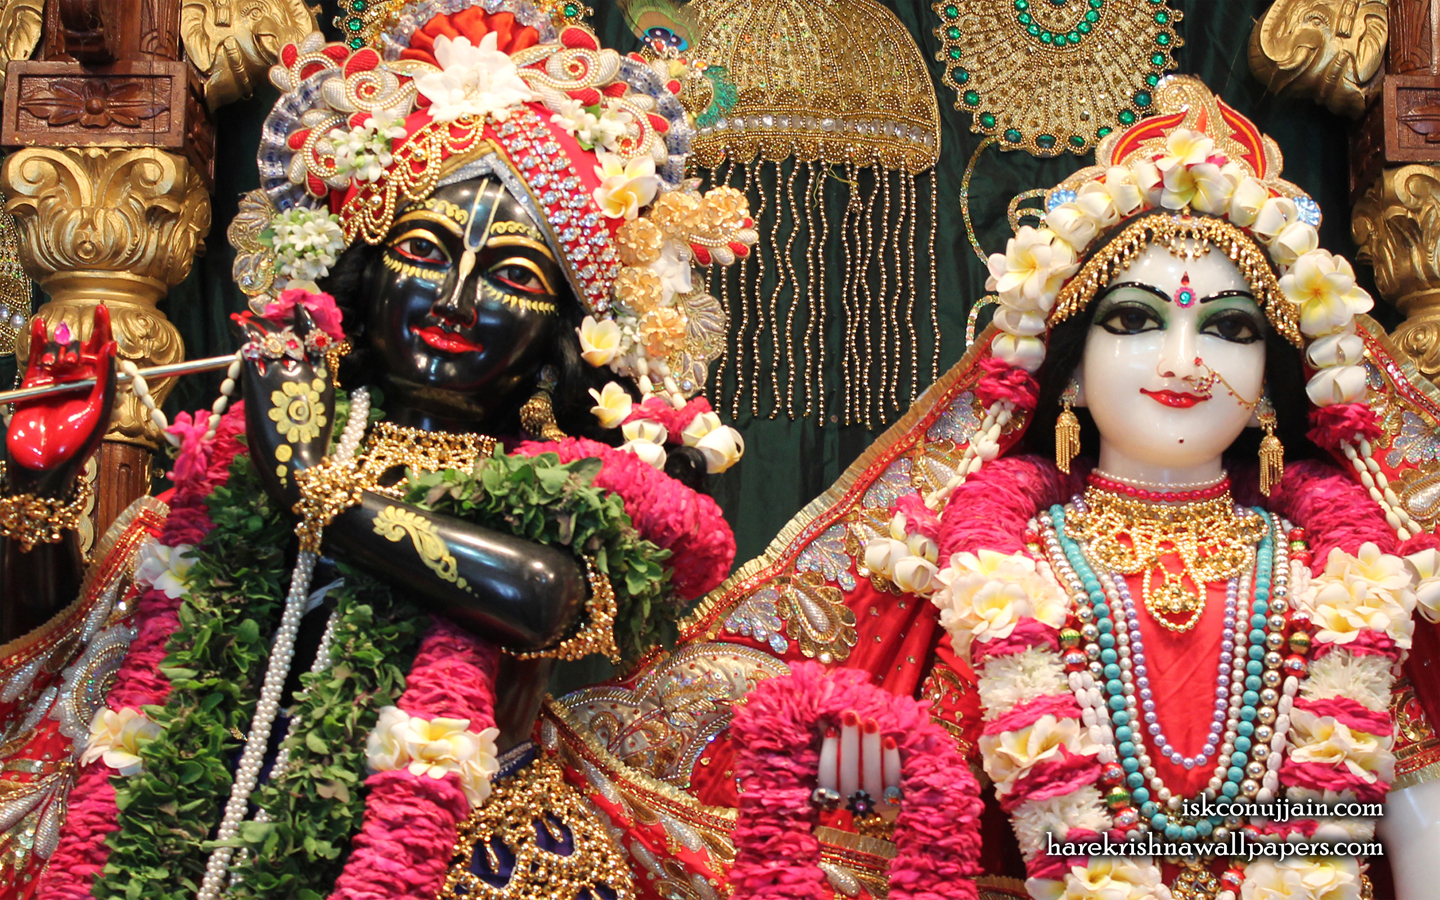 Sri Sri Radha Madanmohan Close up Wallpaper (002) Size 1440x900 Download